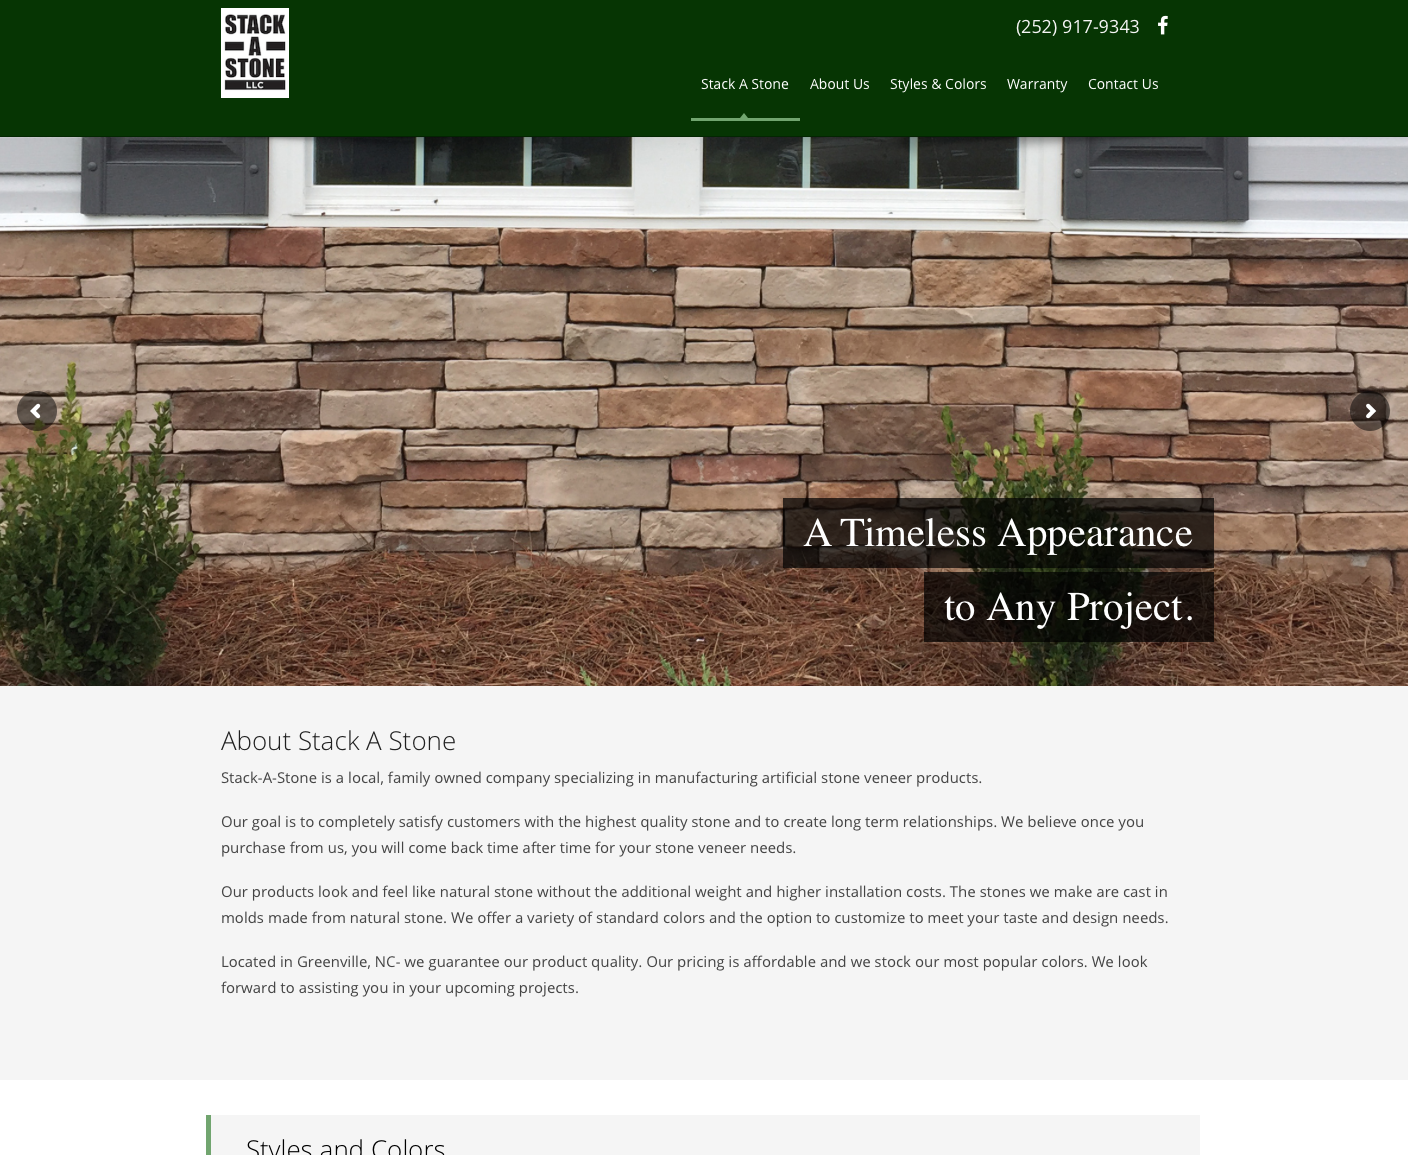 Header of the Stack-a-stone website